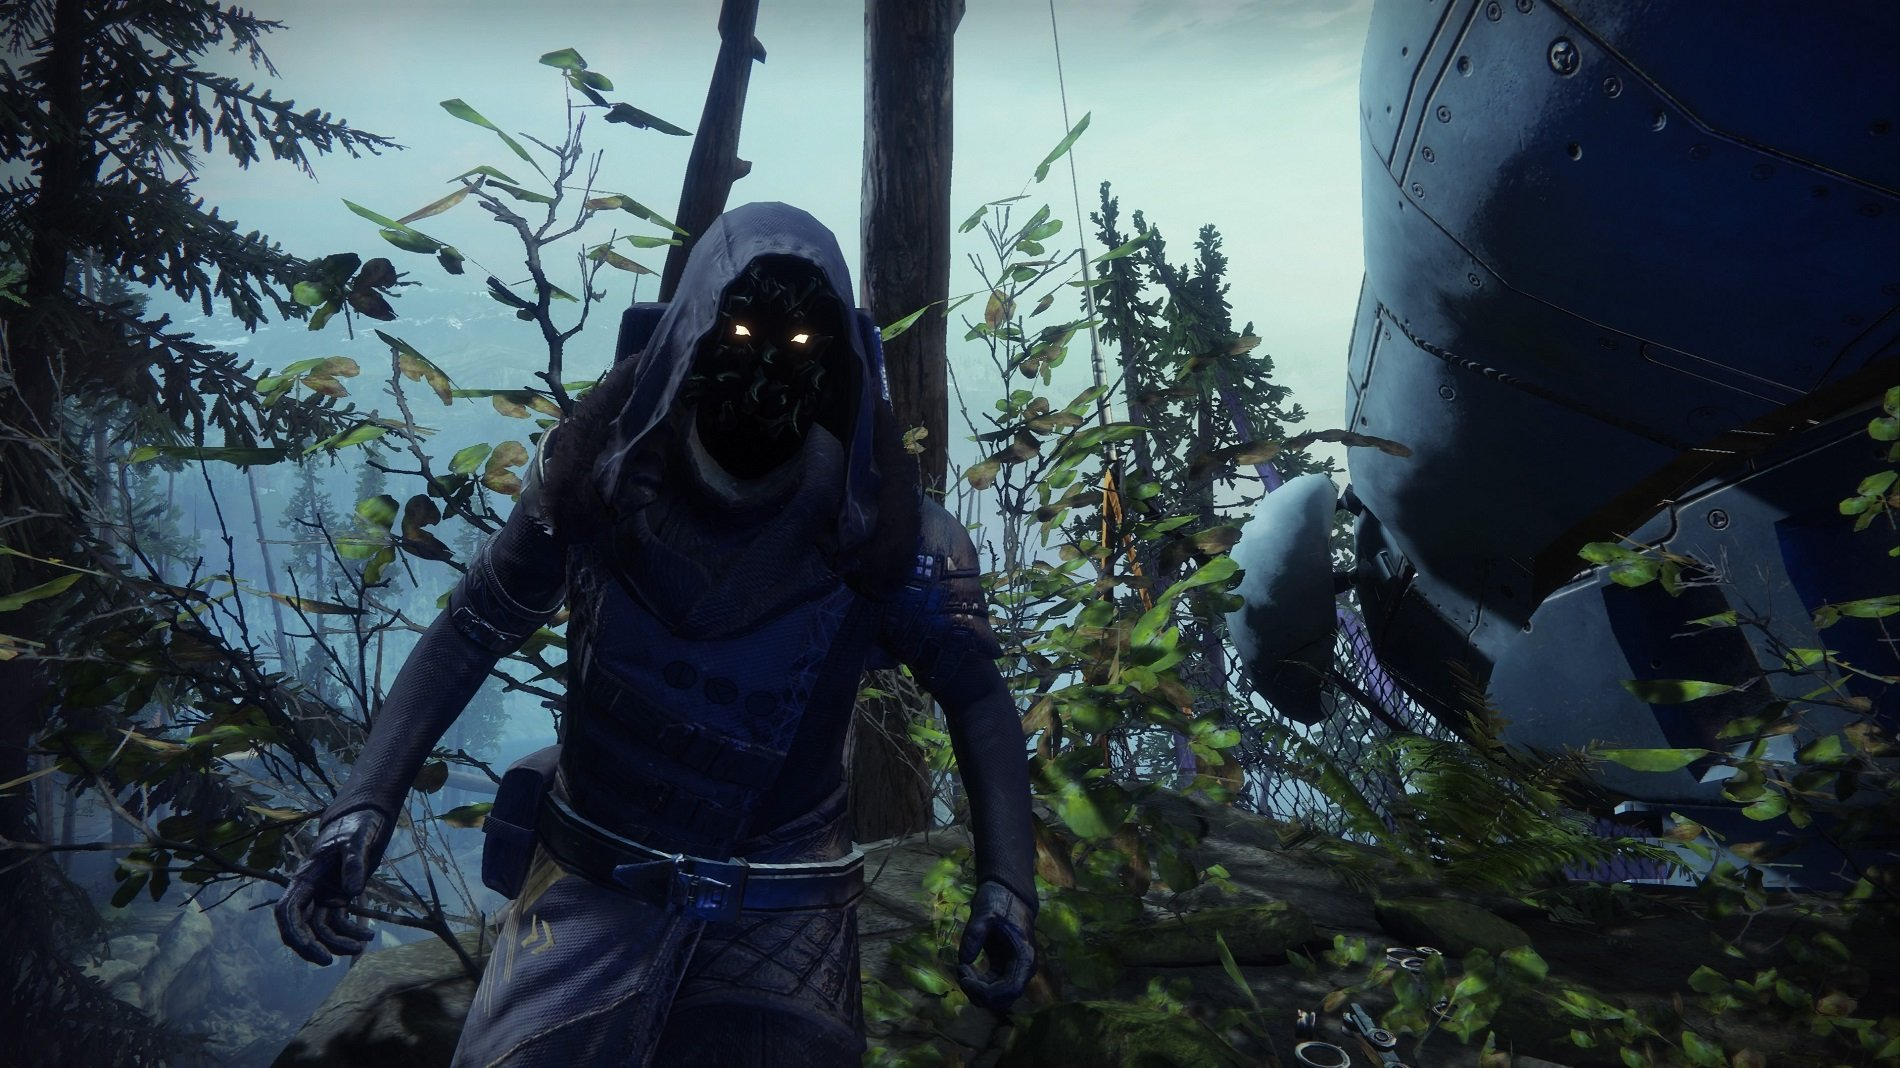 Where to find Xur in Destiny 2 August 30, 2019